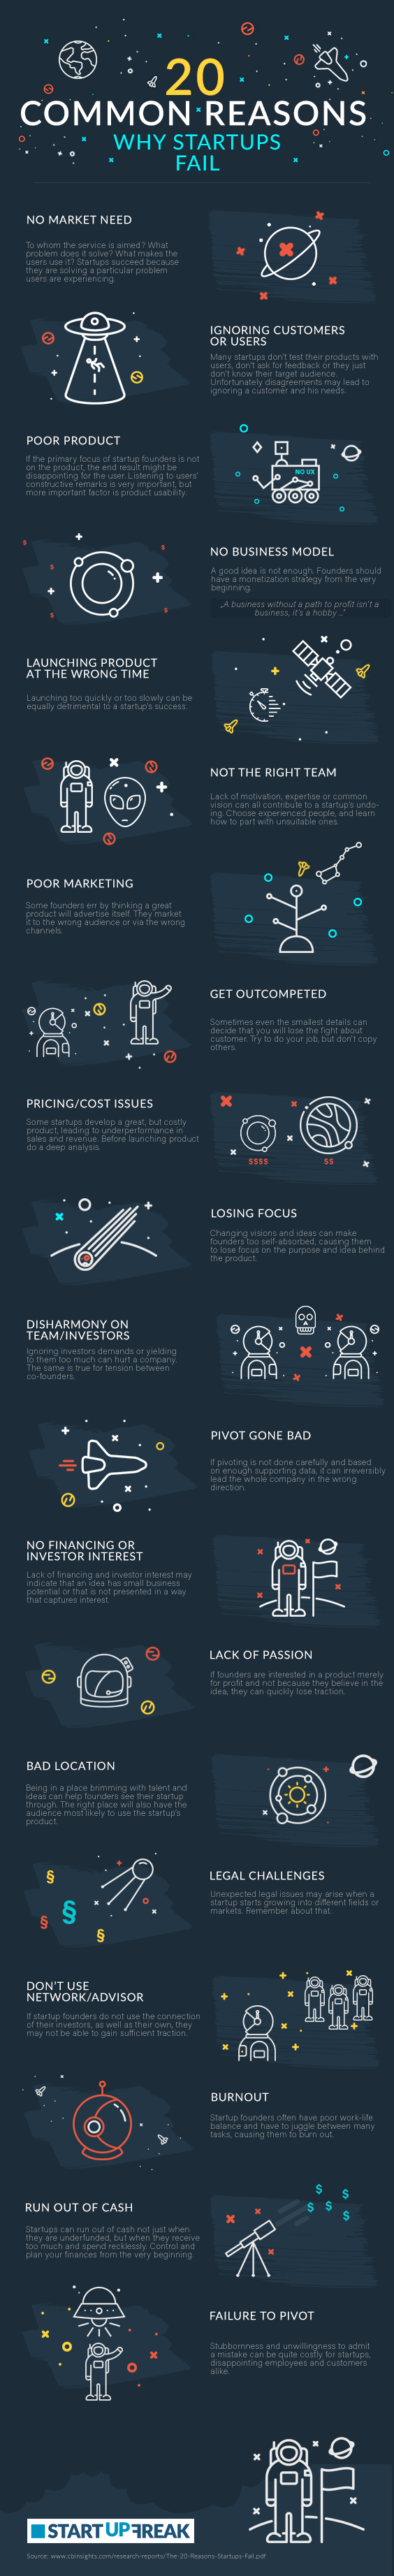 startup fail 20 reasons infographic